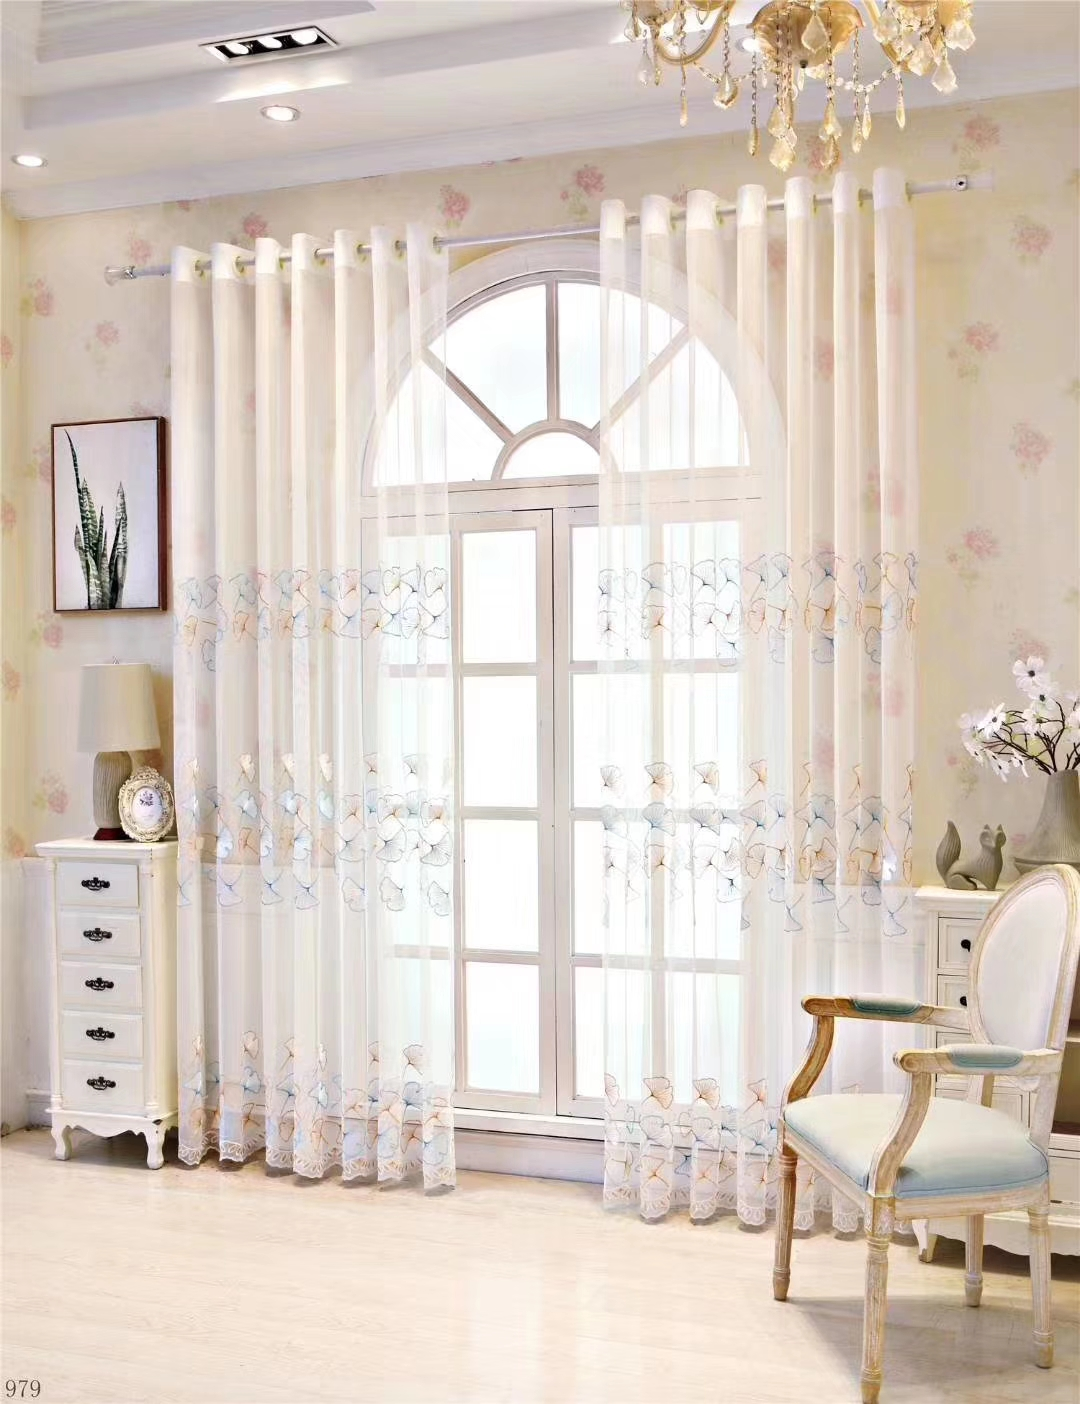 2019 European Style Tulle Curtain Door Window Curtain Drape Panel Sheer Scarf Valances Room Curtains For Modern Bedroom Living Room From Greenliv